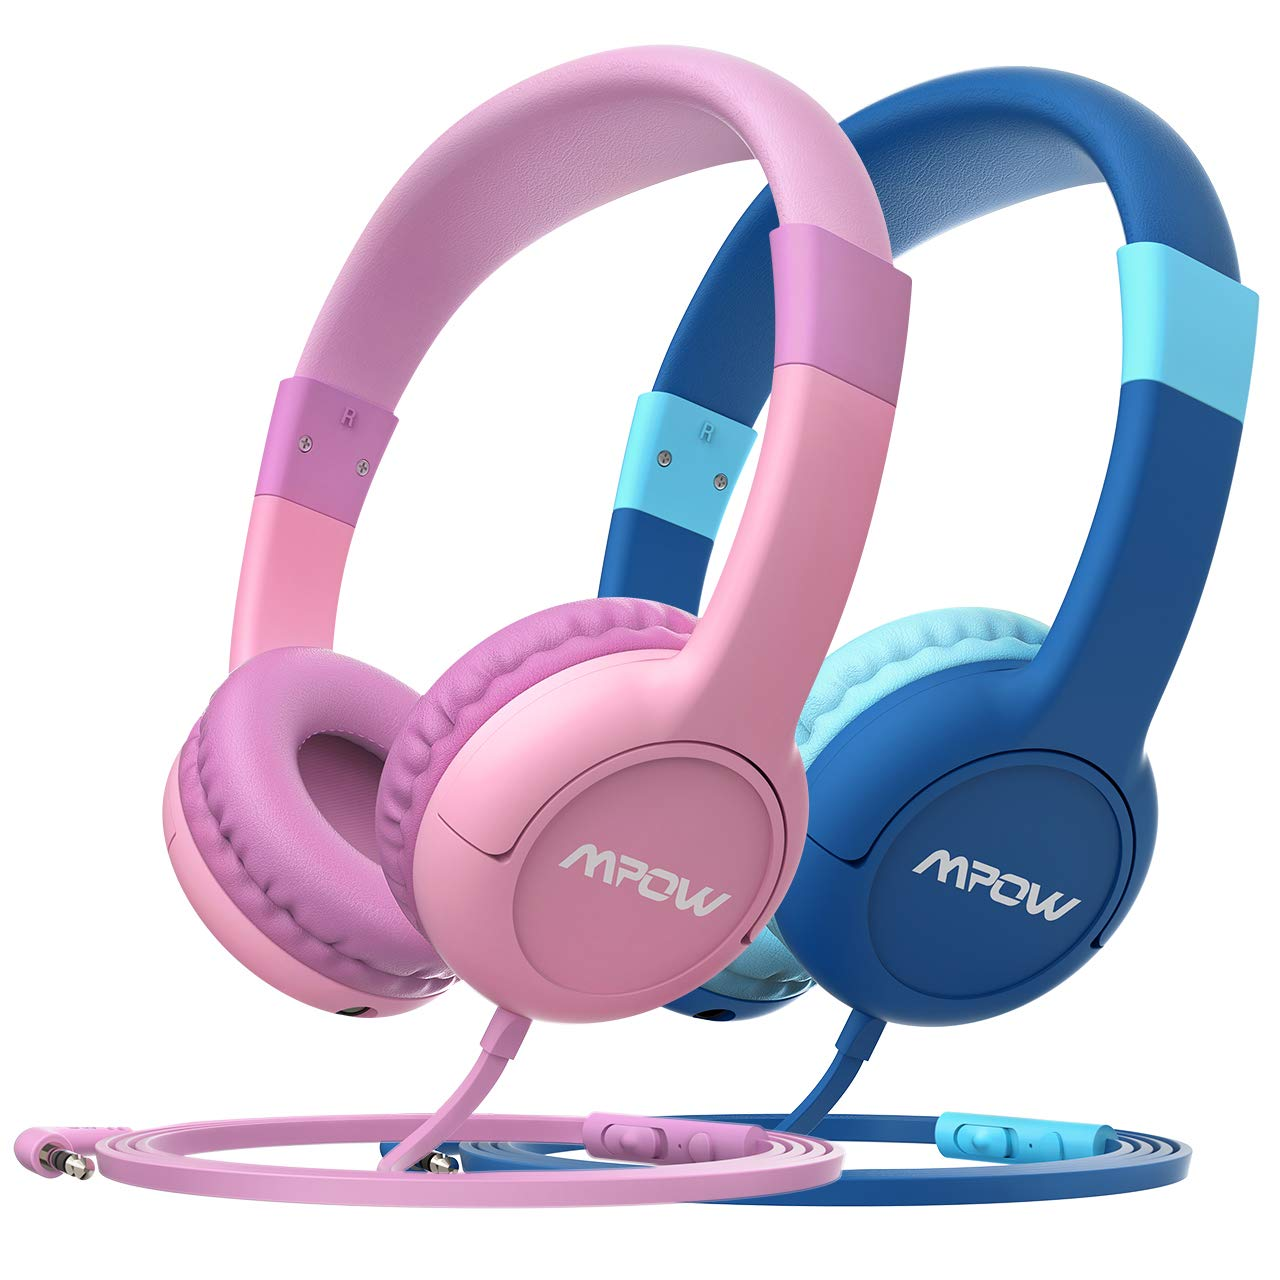 Mpow Kids Headphones, CH1S Mic & Volume Control 85dB Limiting Headset, Sharing Music Headphone Children Kid On-Ear Earphone, School/Home/Travel, Phone PC Laptop Fire Kindle Tablet for Boy Girl(2 Pack)